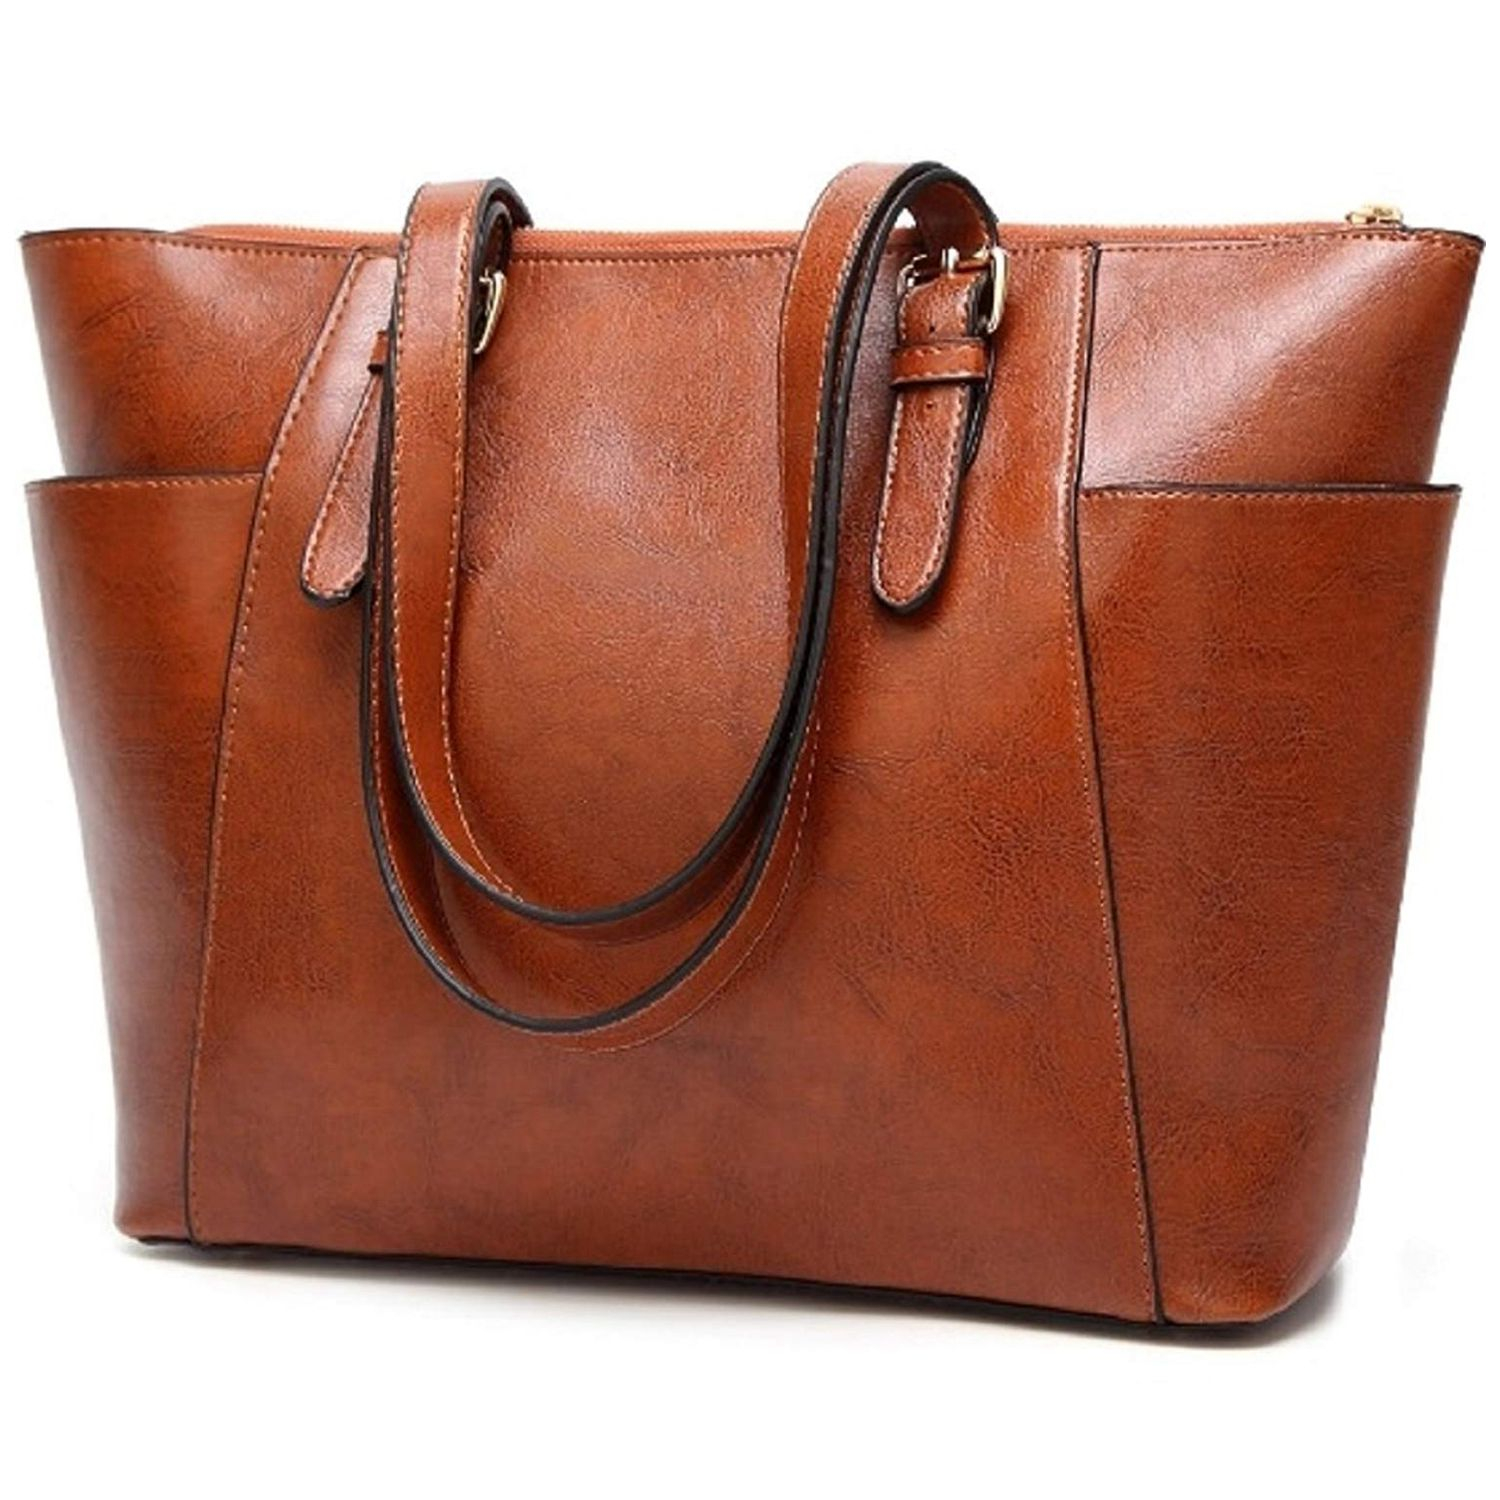 Business Bag Bag Leather Bag For IPAD Storage A4 Size